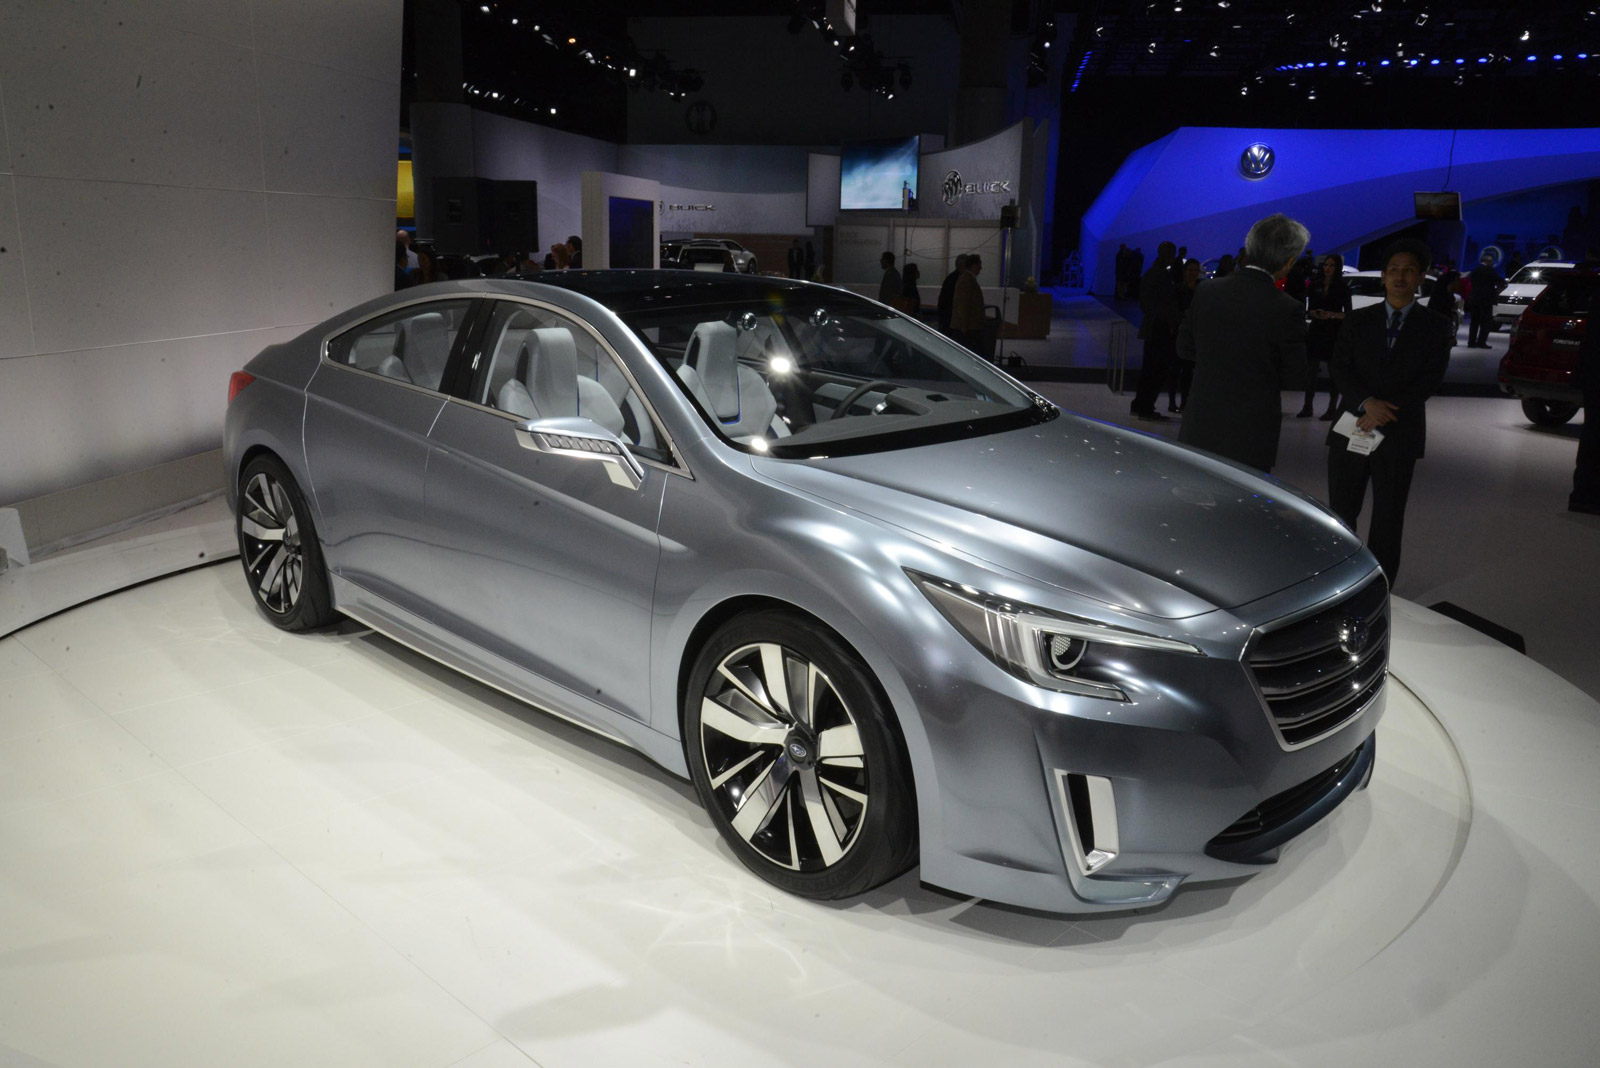 2015 subaru legacy concept live photos and video from l a. Black Bedroom Furniture Sets. Home Design Ideas